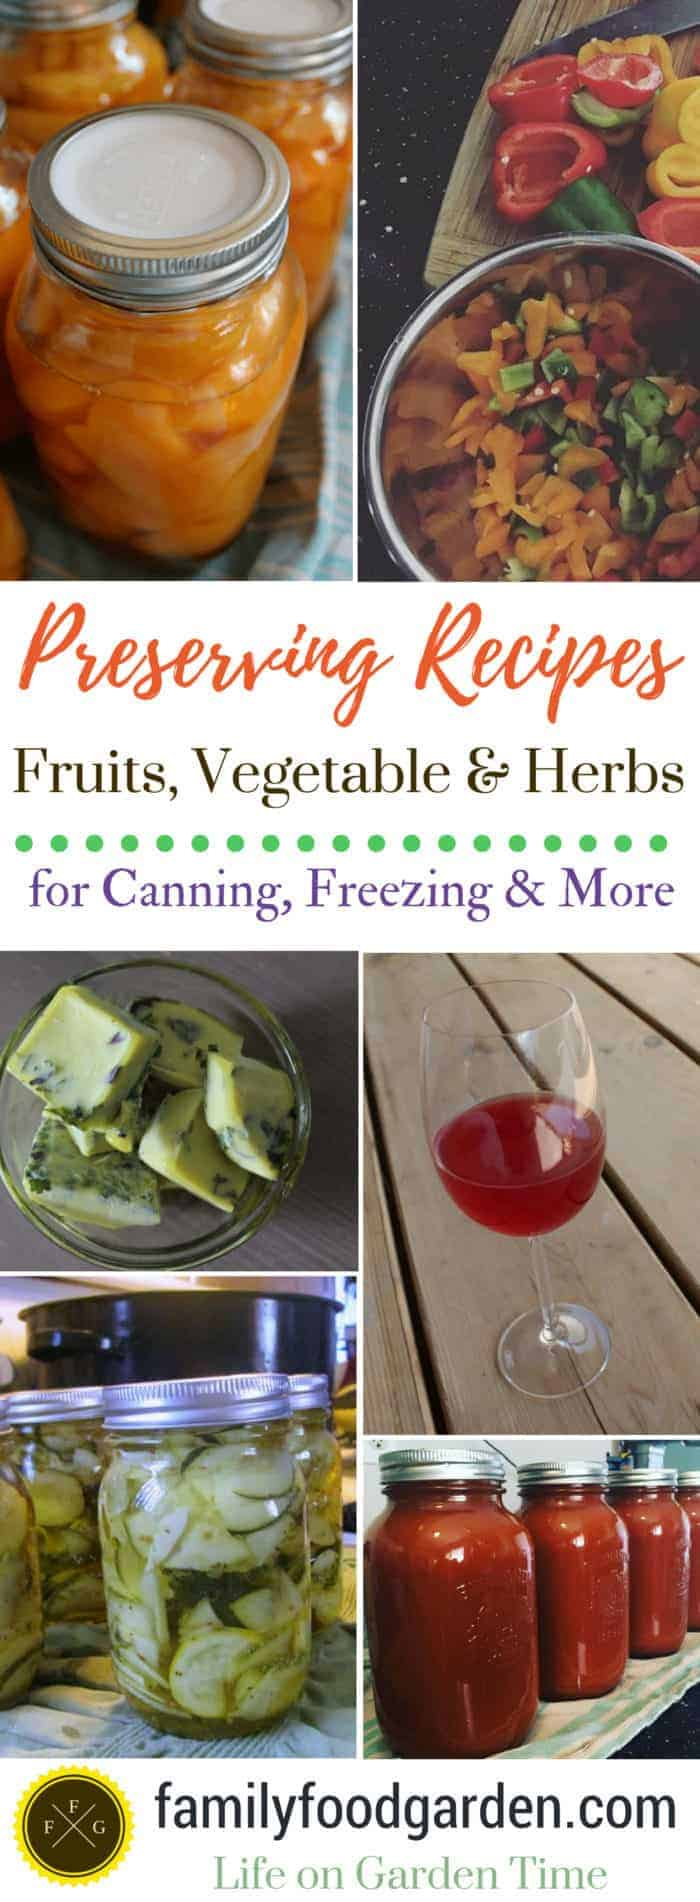 Preserving fruits, vegetables and herbs